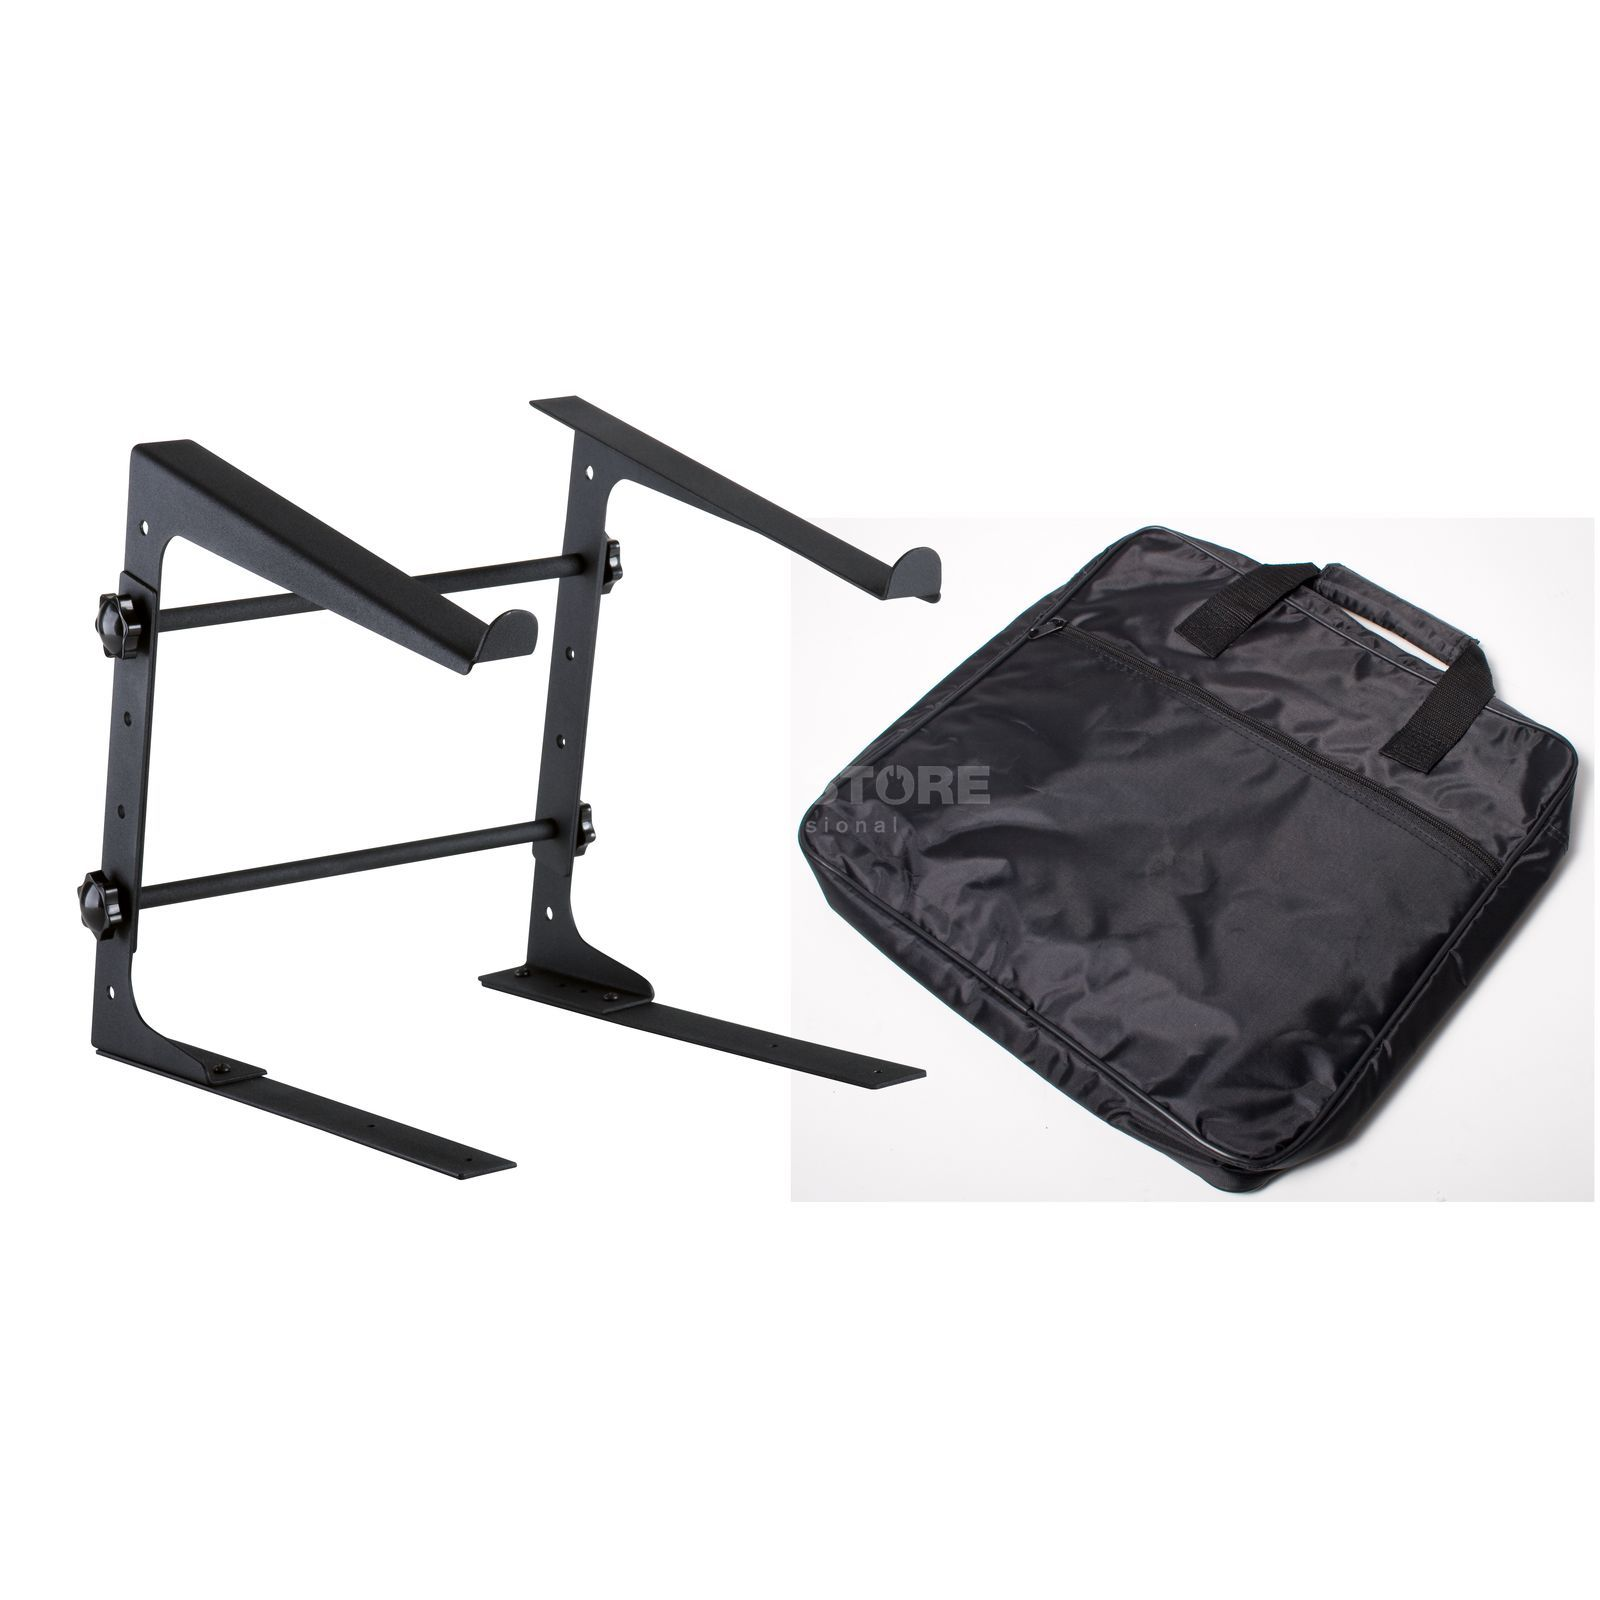 Fame Laptop Stand + Tasche - Set Productafbeelding